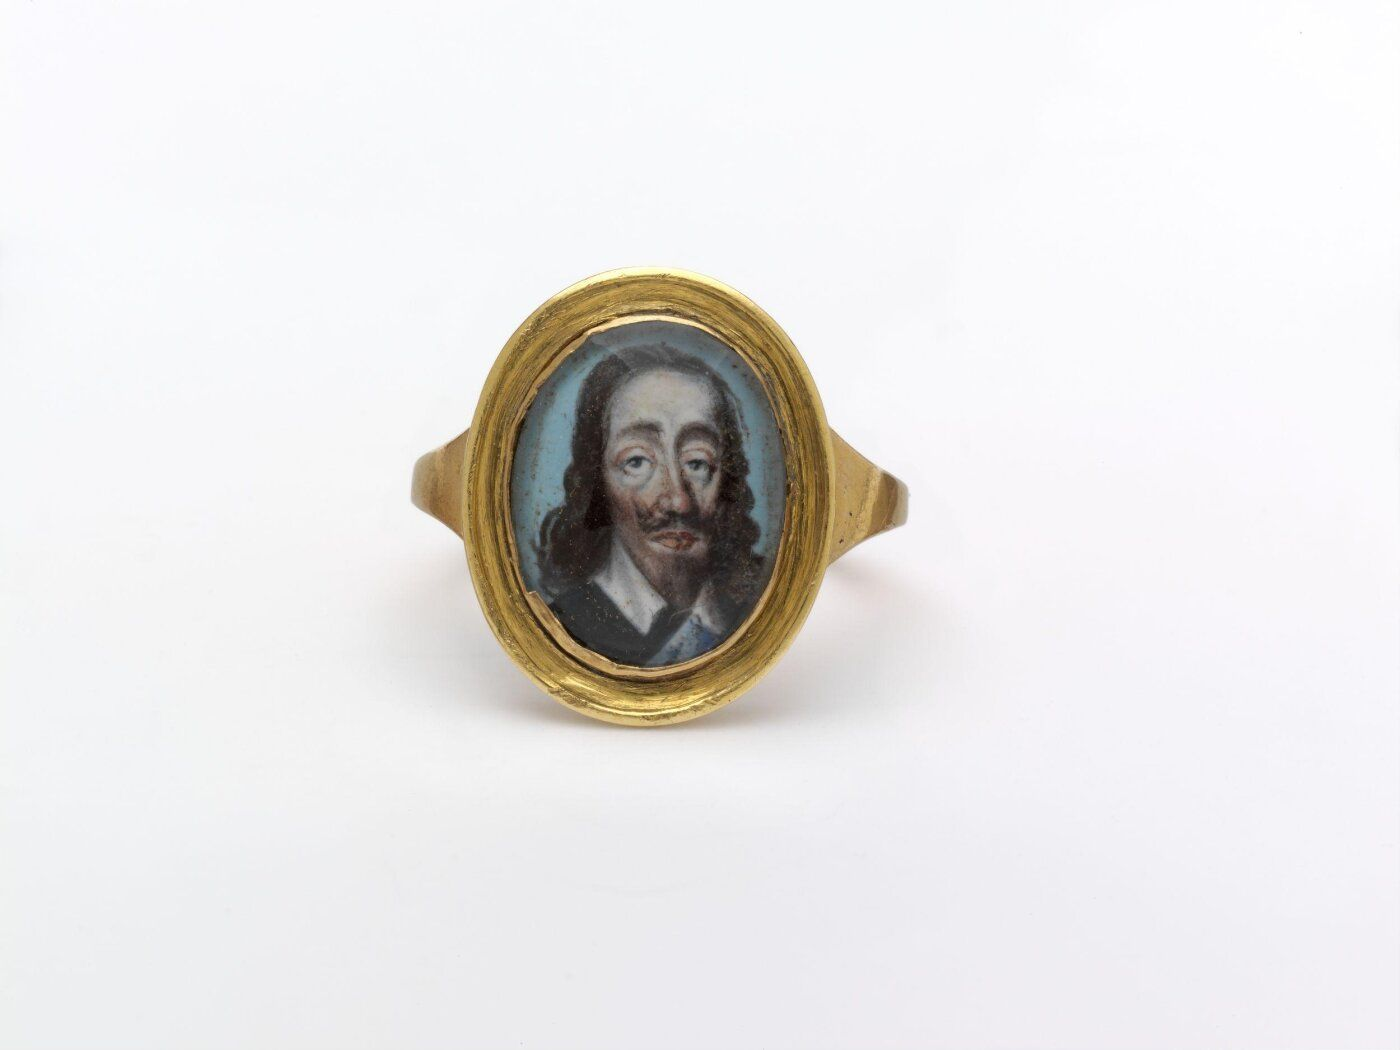 Ring with face of Charles I, 17th c. painting, 18th c. setting. In the collection of the V&A Museum.